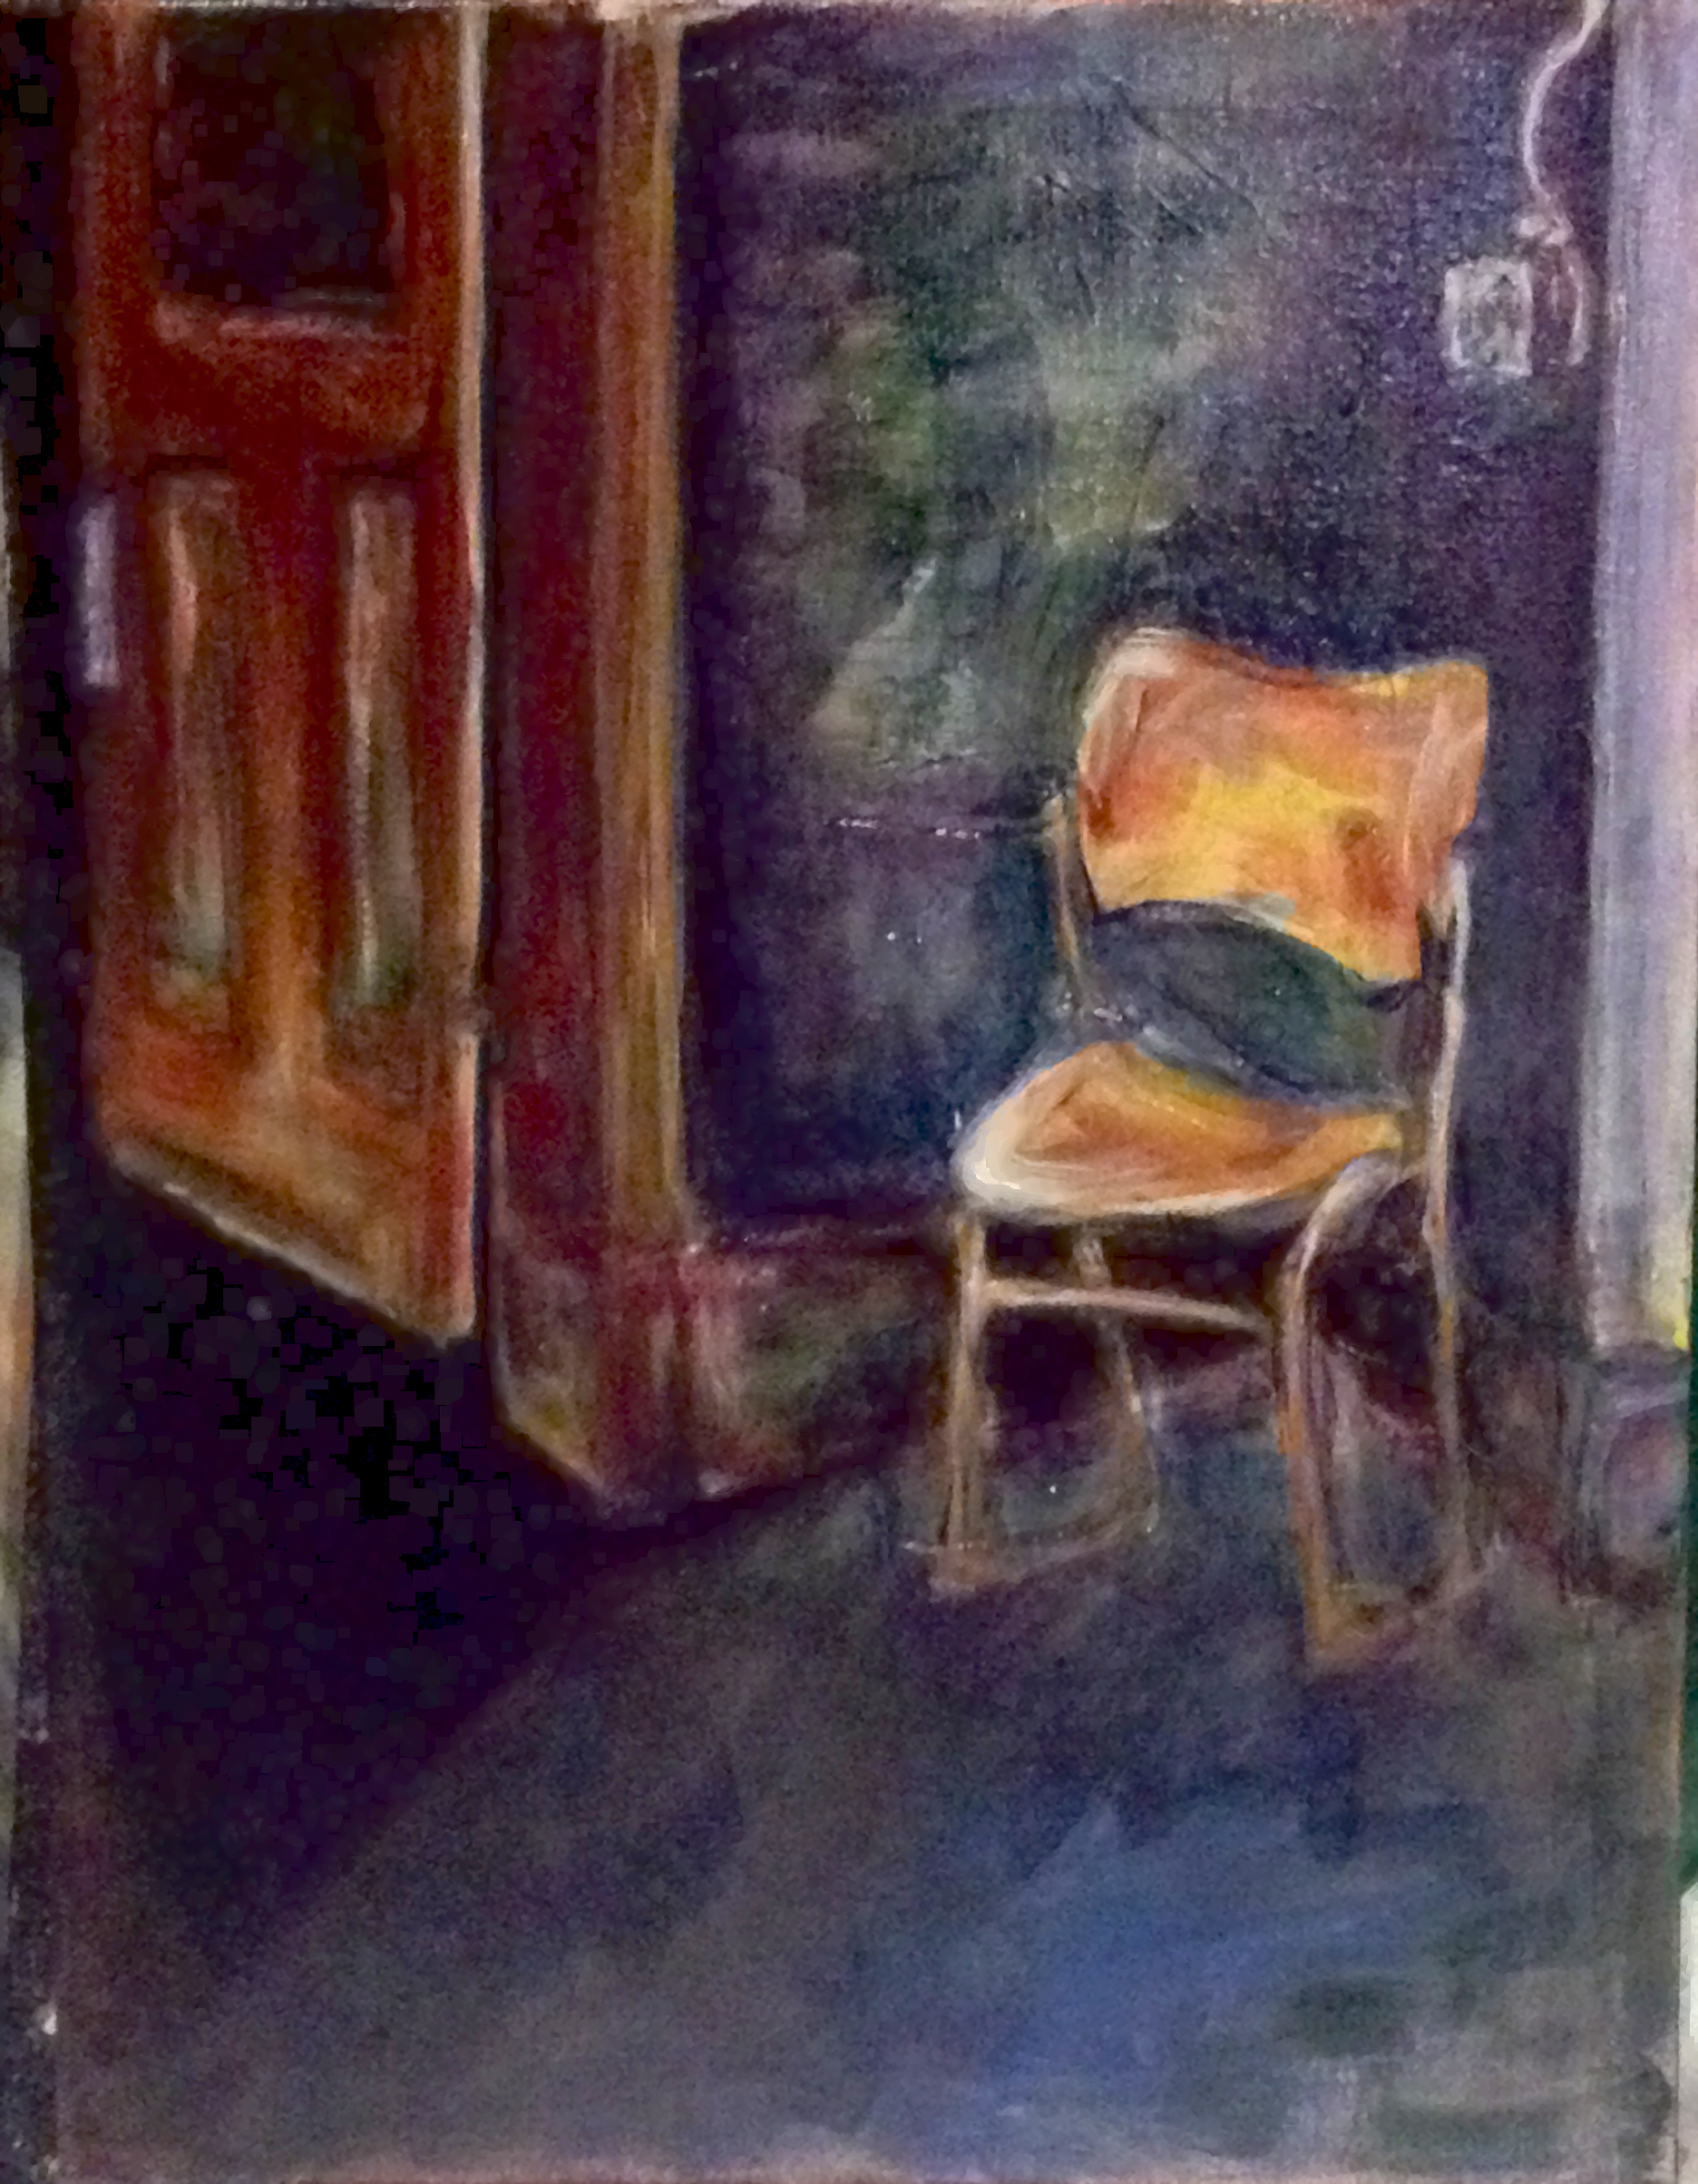 PAINTING BY ALICIA LAWRENCE   WEBSITE  http://aliciamarielaw.portfoliobox.me